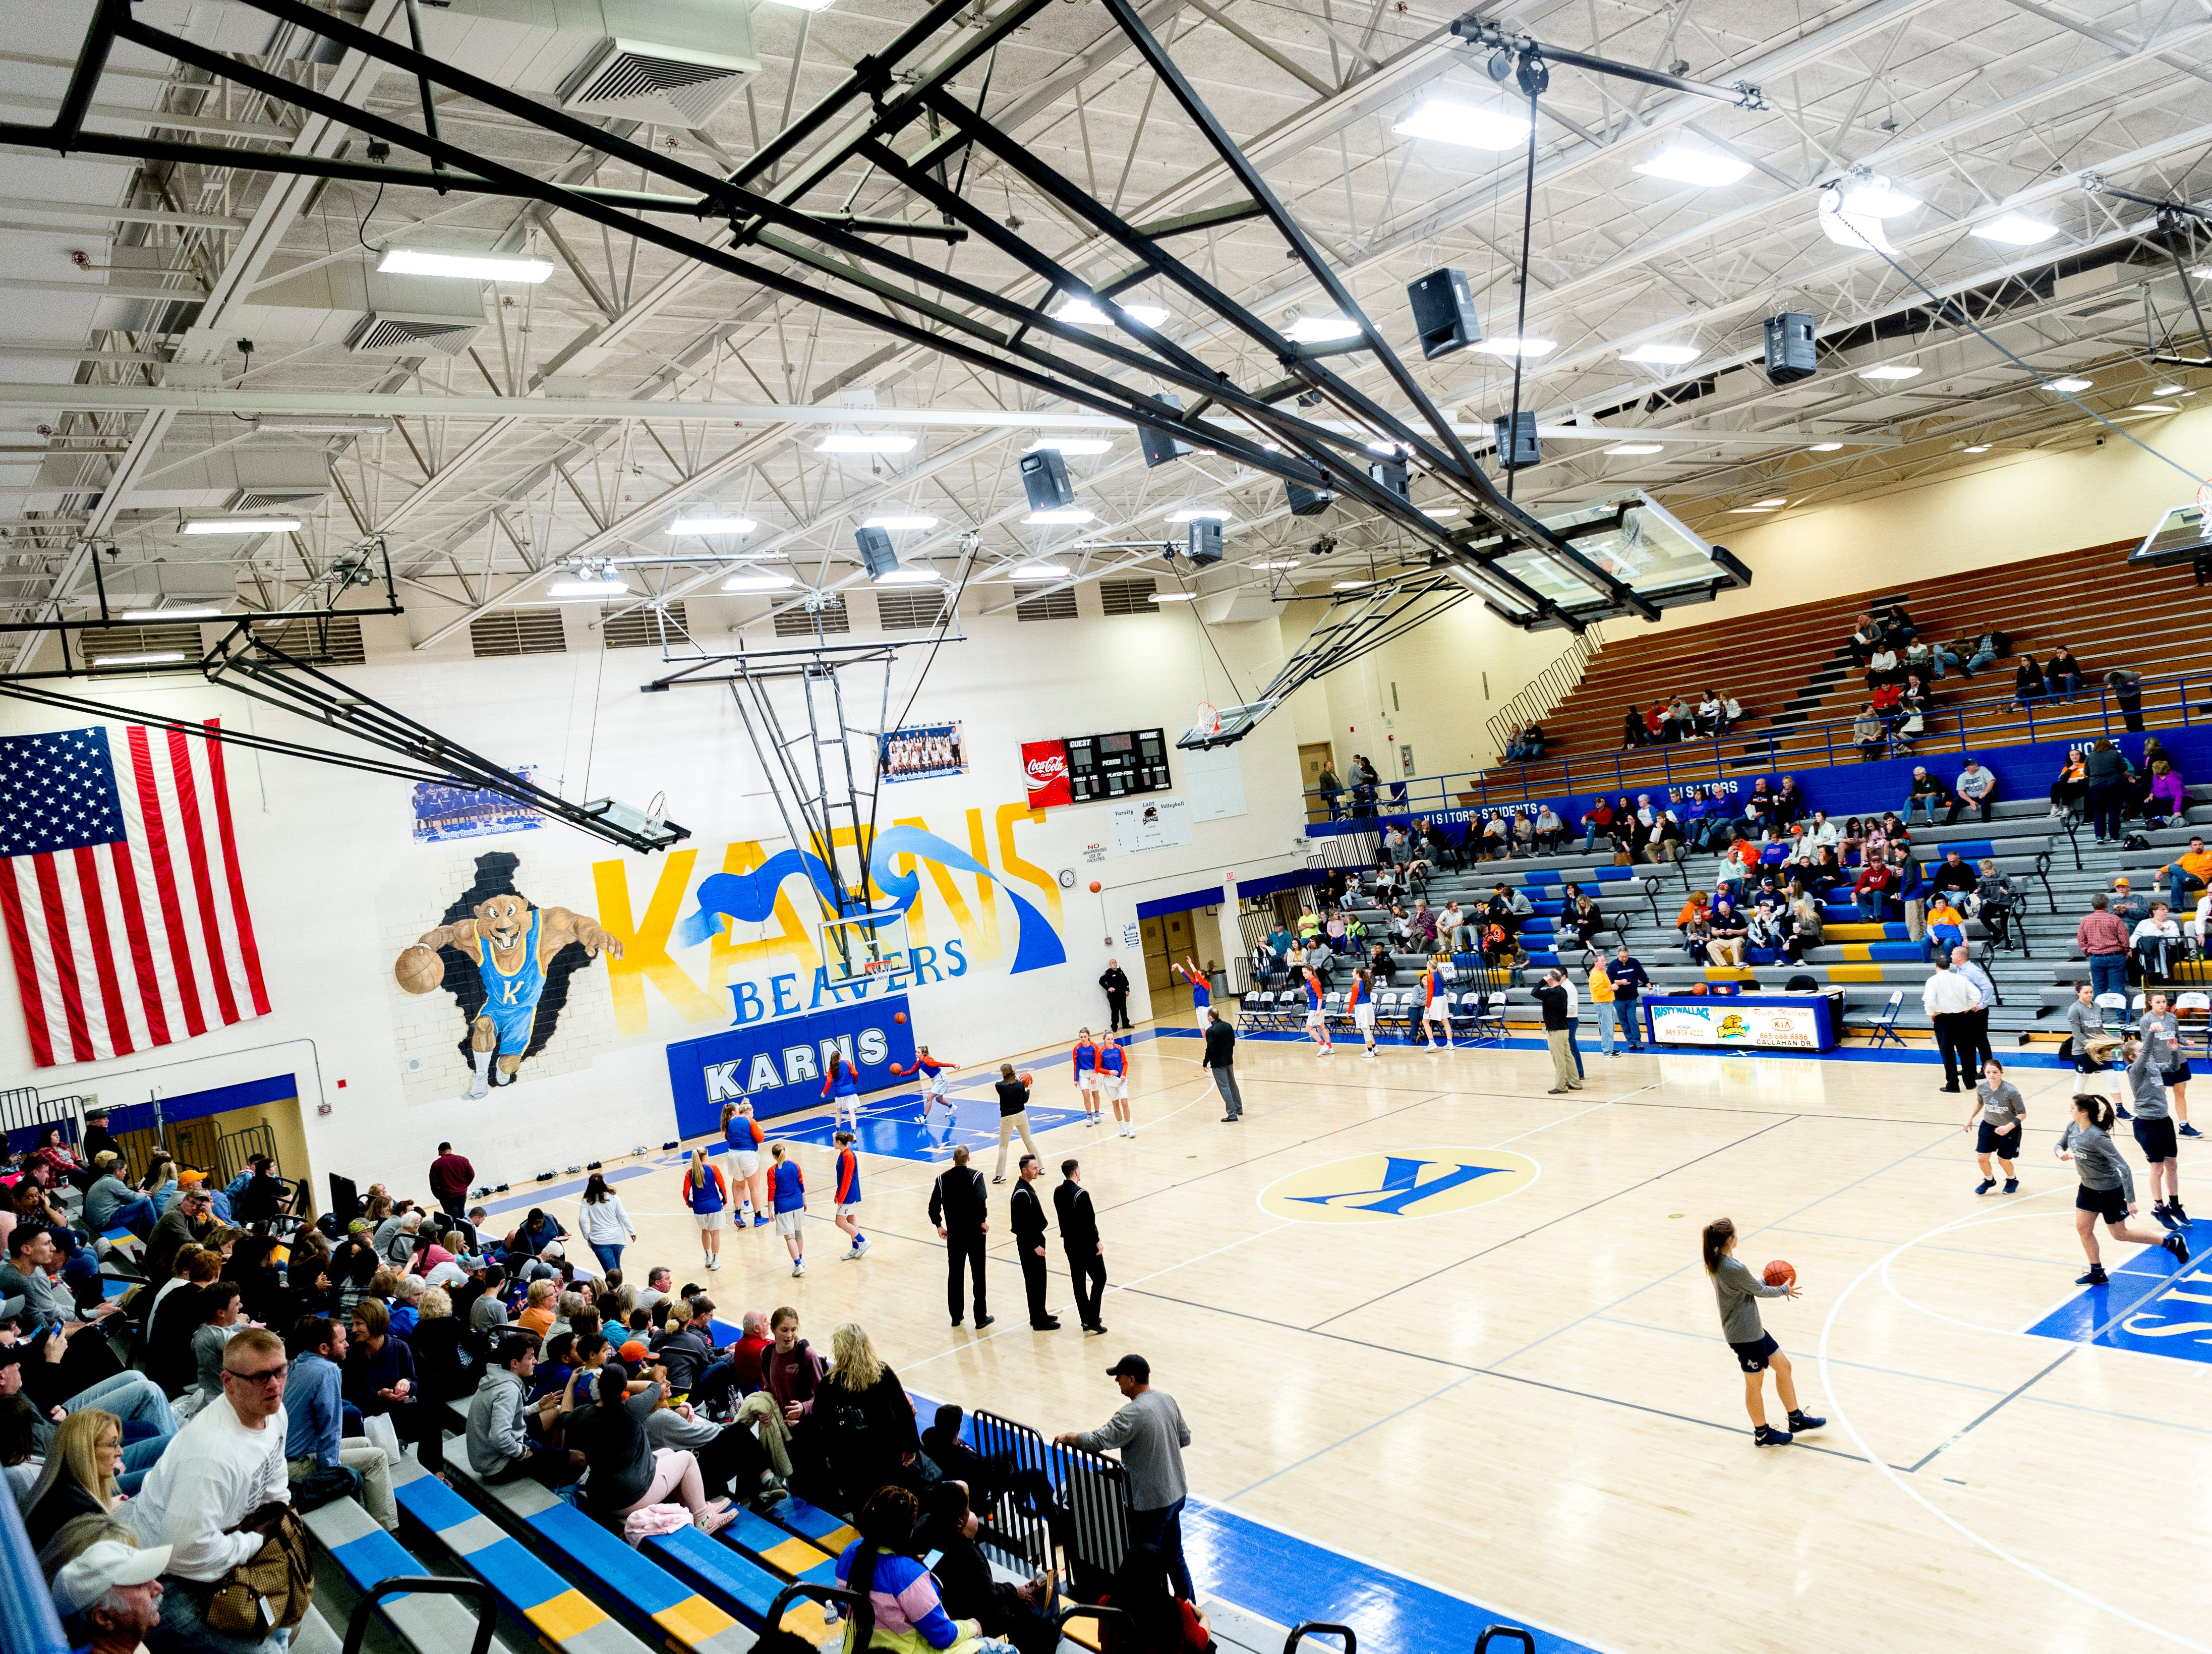 A view of the Karns High School gym during a semifinal game at Karns High School in Knoxville, Tennessee on Saturday, February 16, 2019.